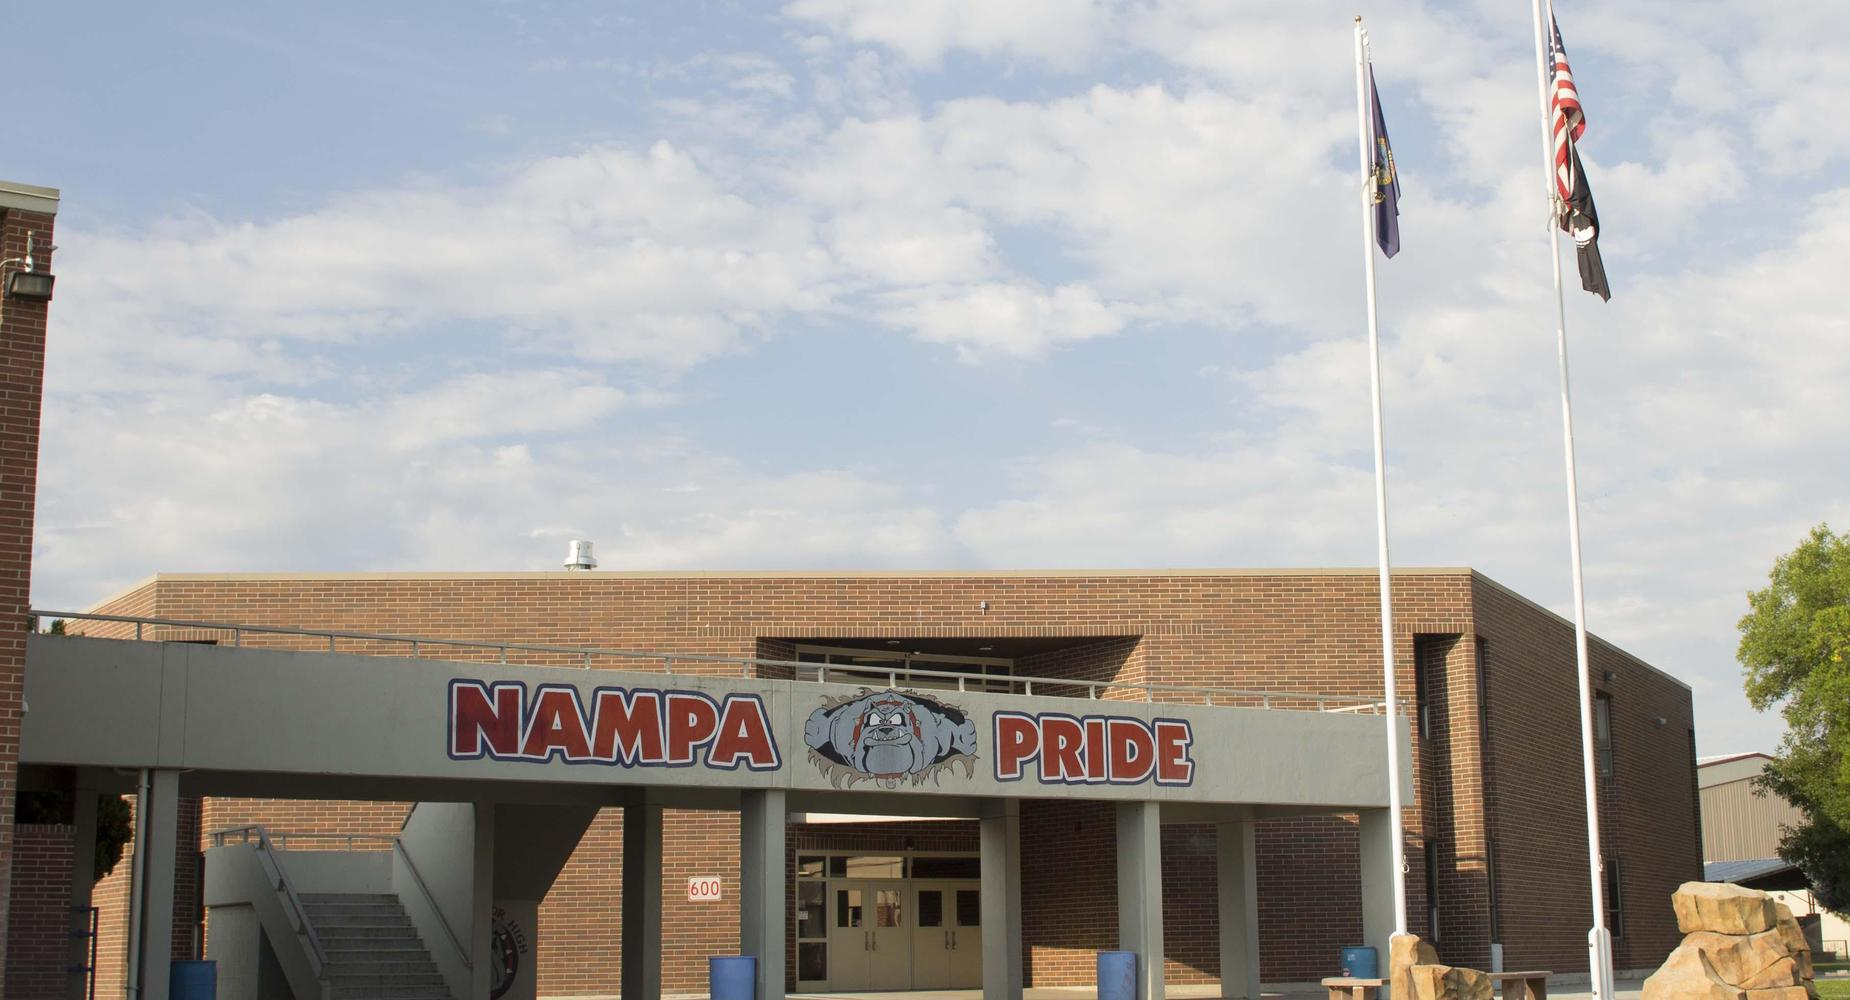 Front exterior of Nampa High School showing the bulldog mascot and Nampa Pride.